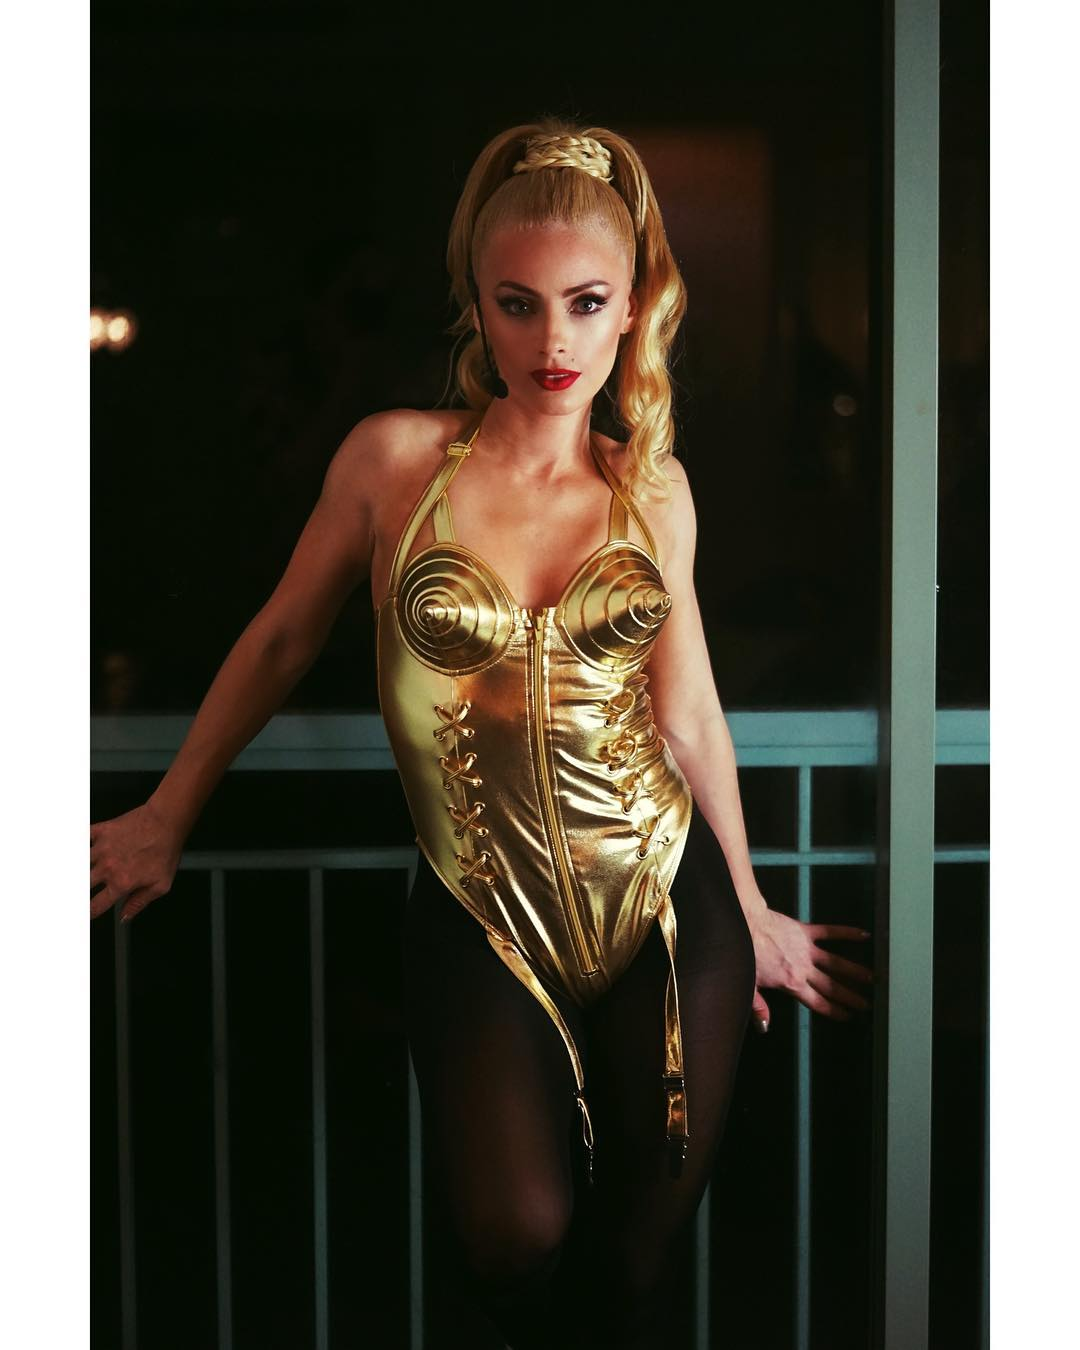 Natalia Rivera In Madonna Blonde Ambition Tour Costume At Halloween 2019